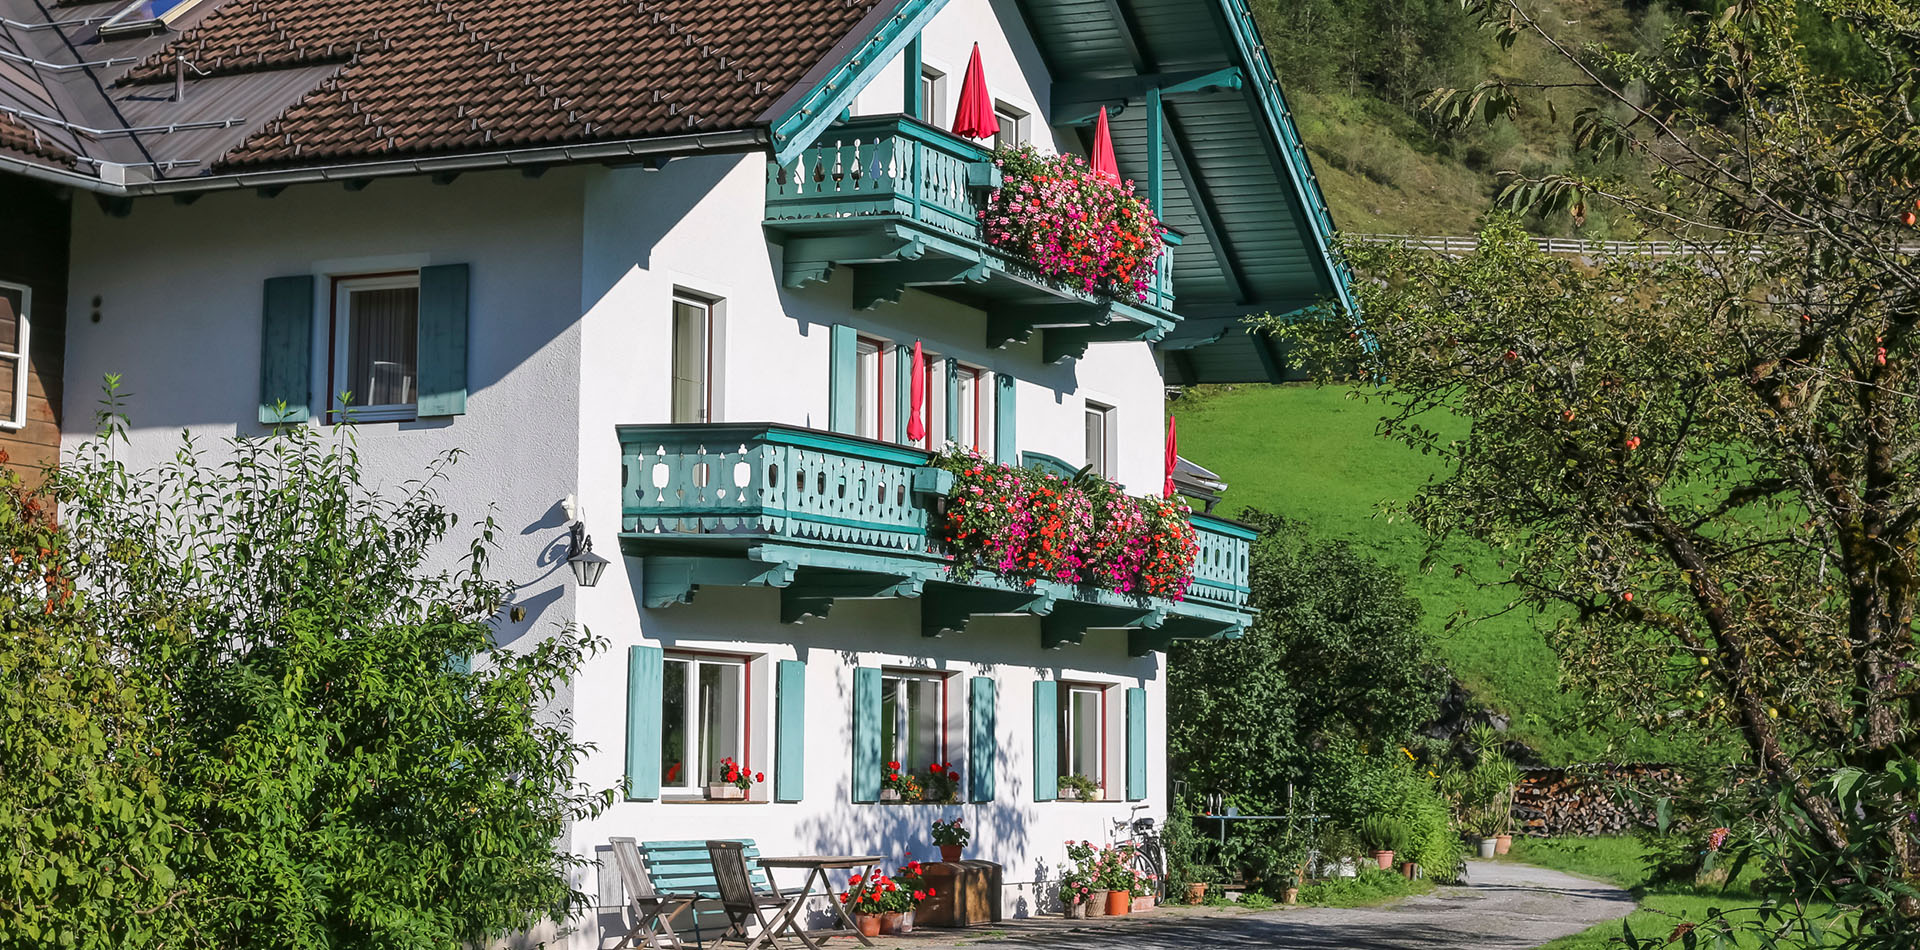 Your accommodation in the Salzburger Land